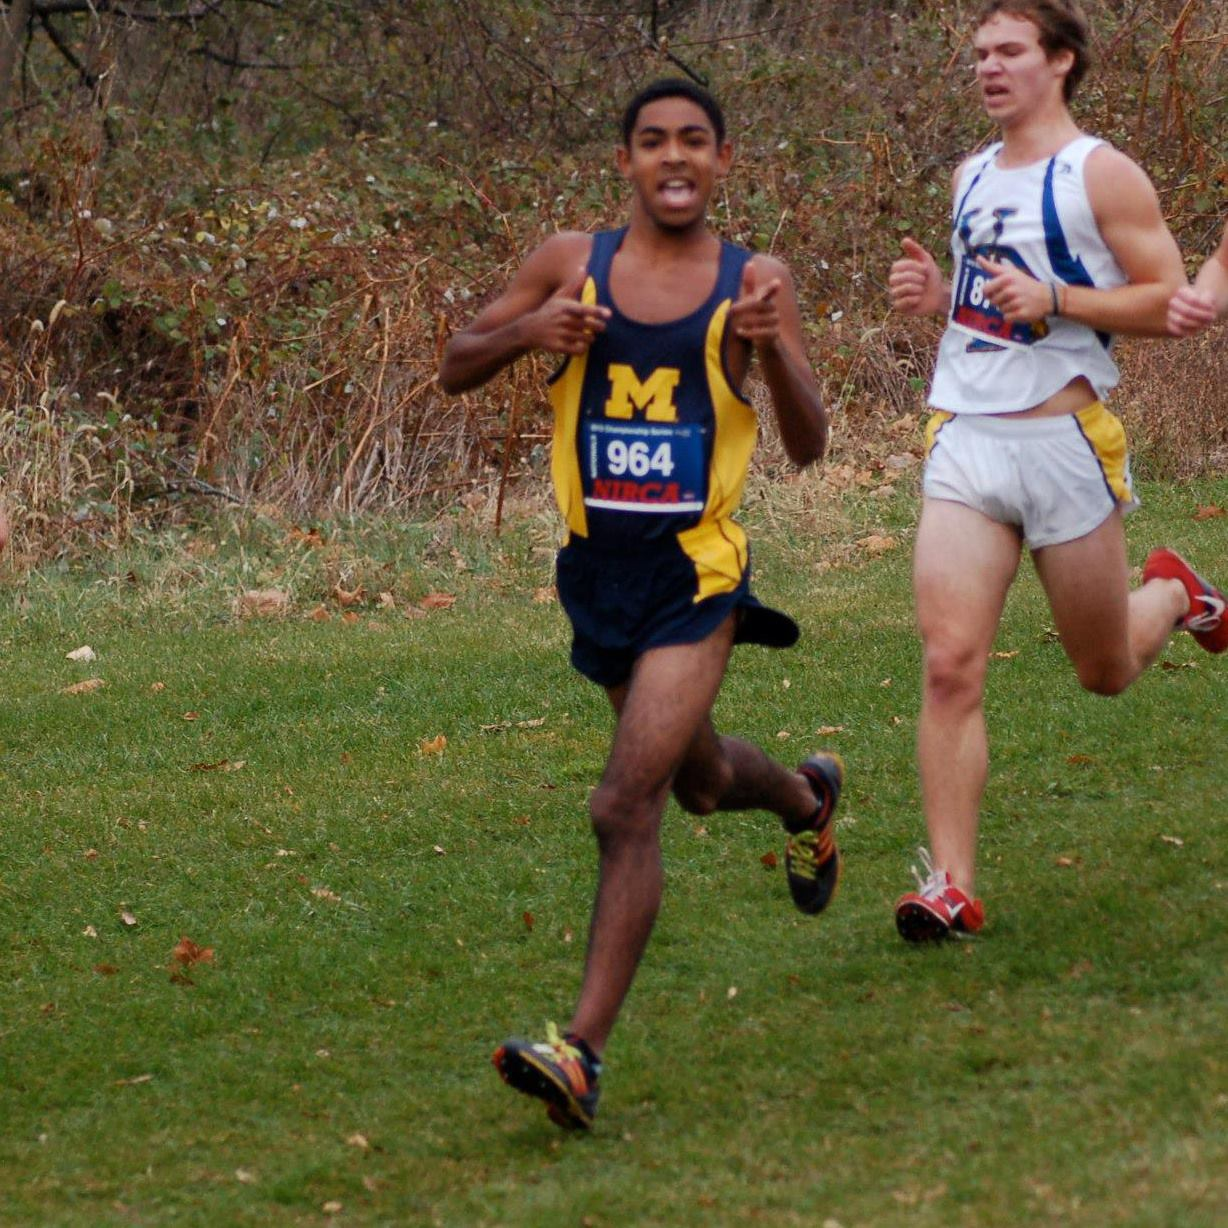 John running Cross Country for UMich